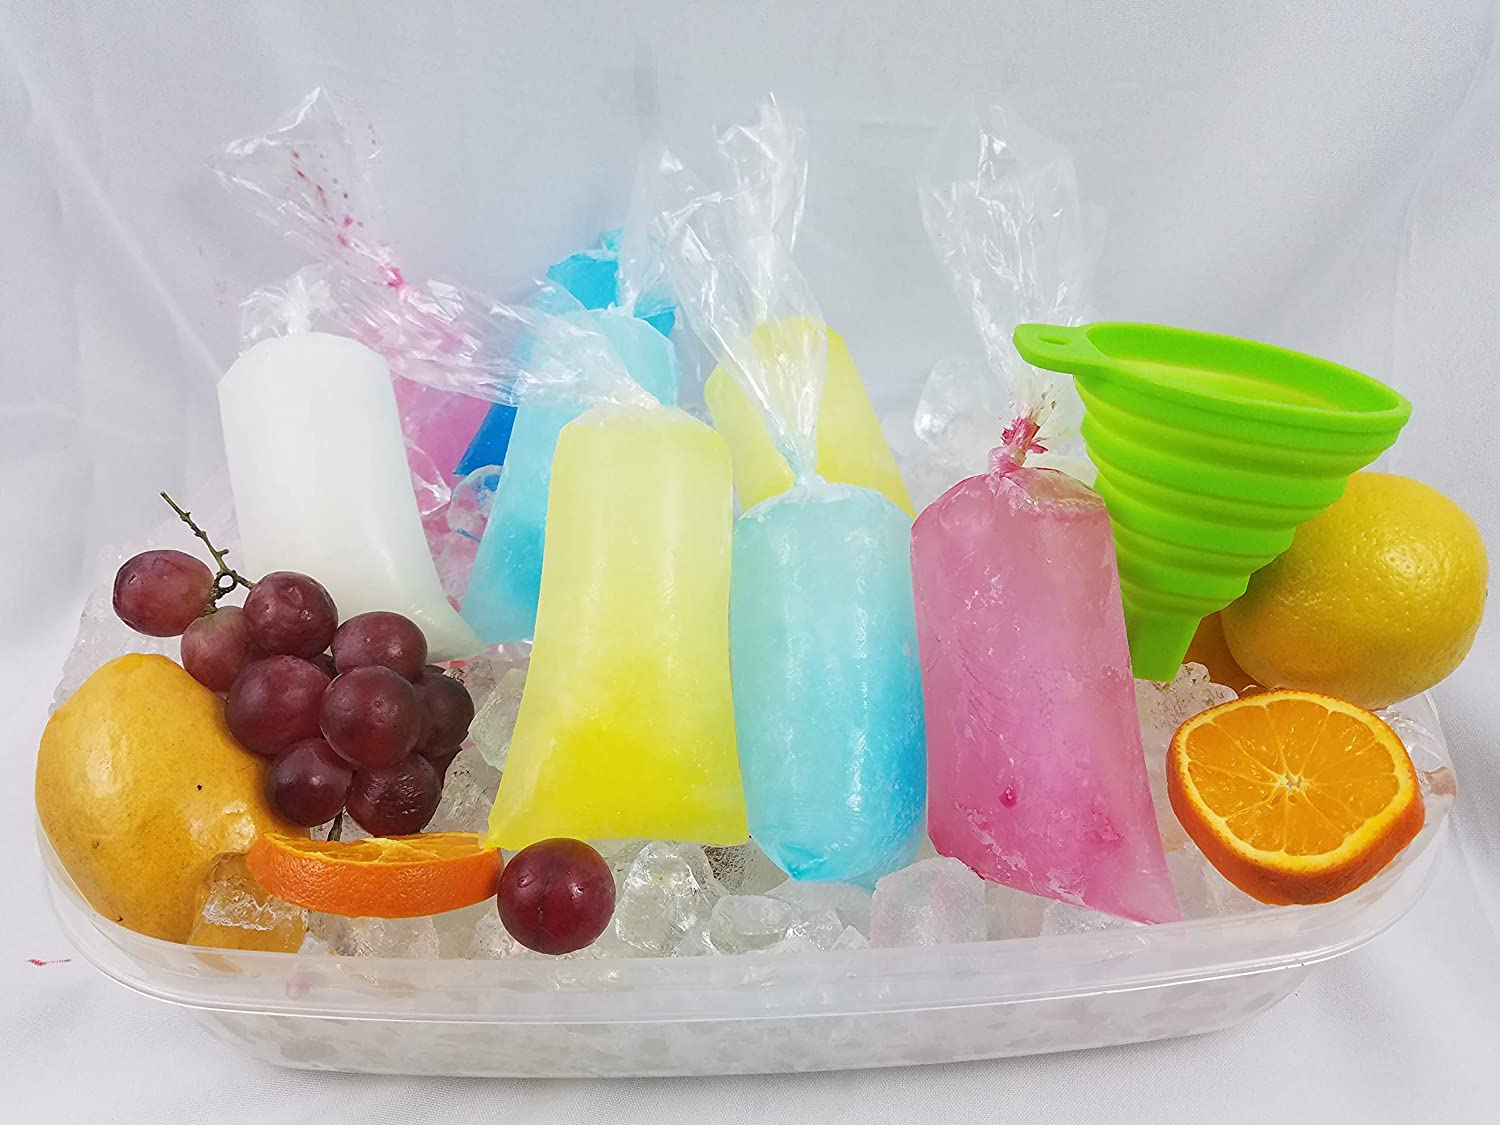 3x10 200 pcs Ice Pop Bags bpa Free /1 Free Funnel and Multipurpose Use/Vikingos/marcianos/bolsas para Bolis de Hielo/Freezen pop Sicle/ice Candy ...